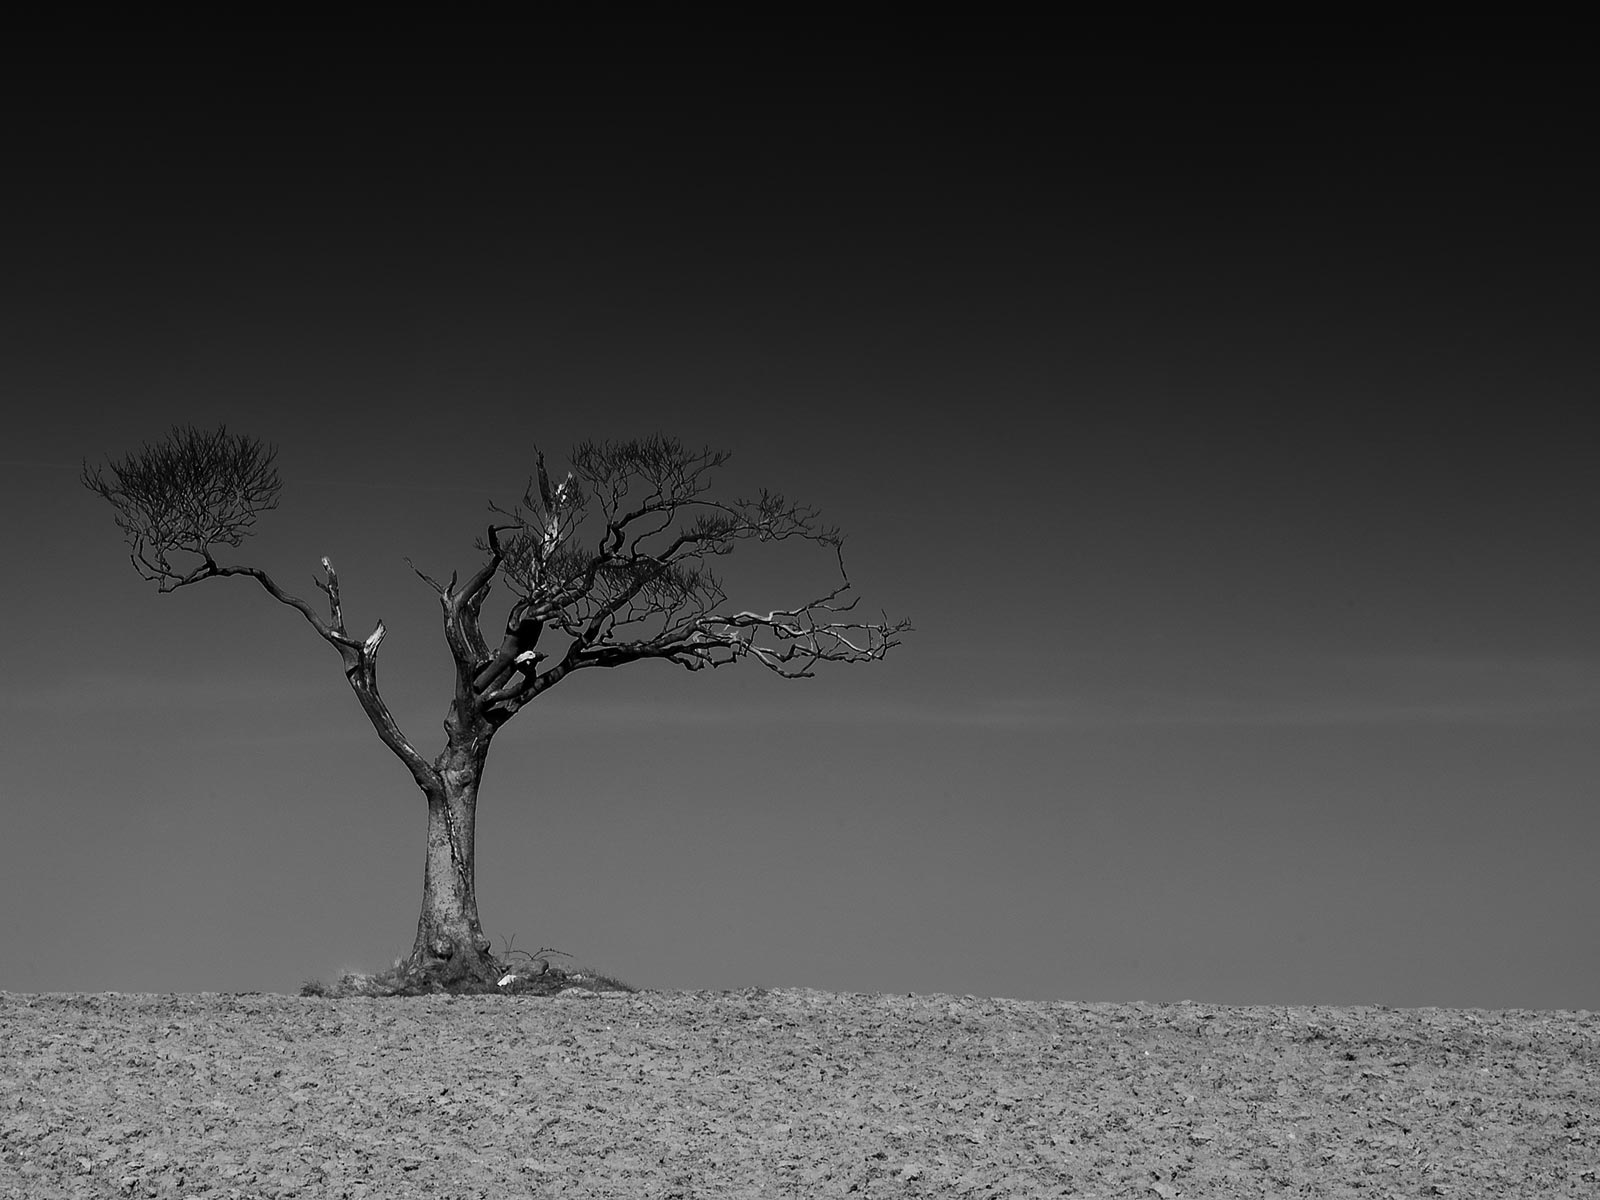 Tree taken at Ballyrobert, County Down by Geoff McGrath, Fine Art & Landscape Photographer, Northern Ireland